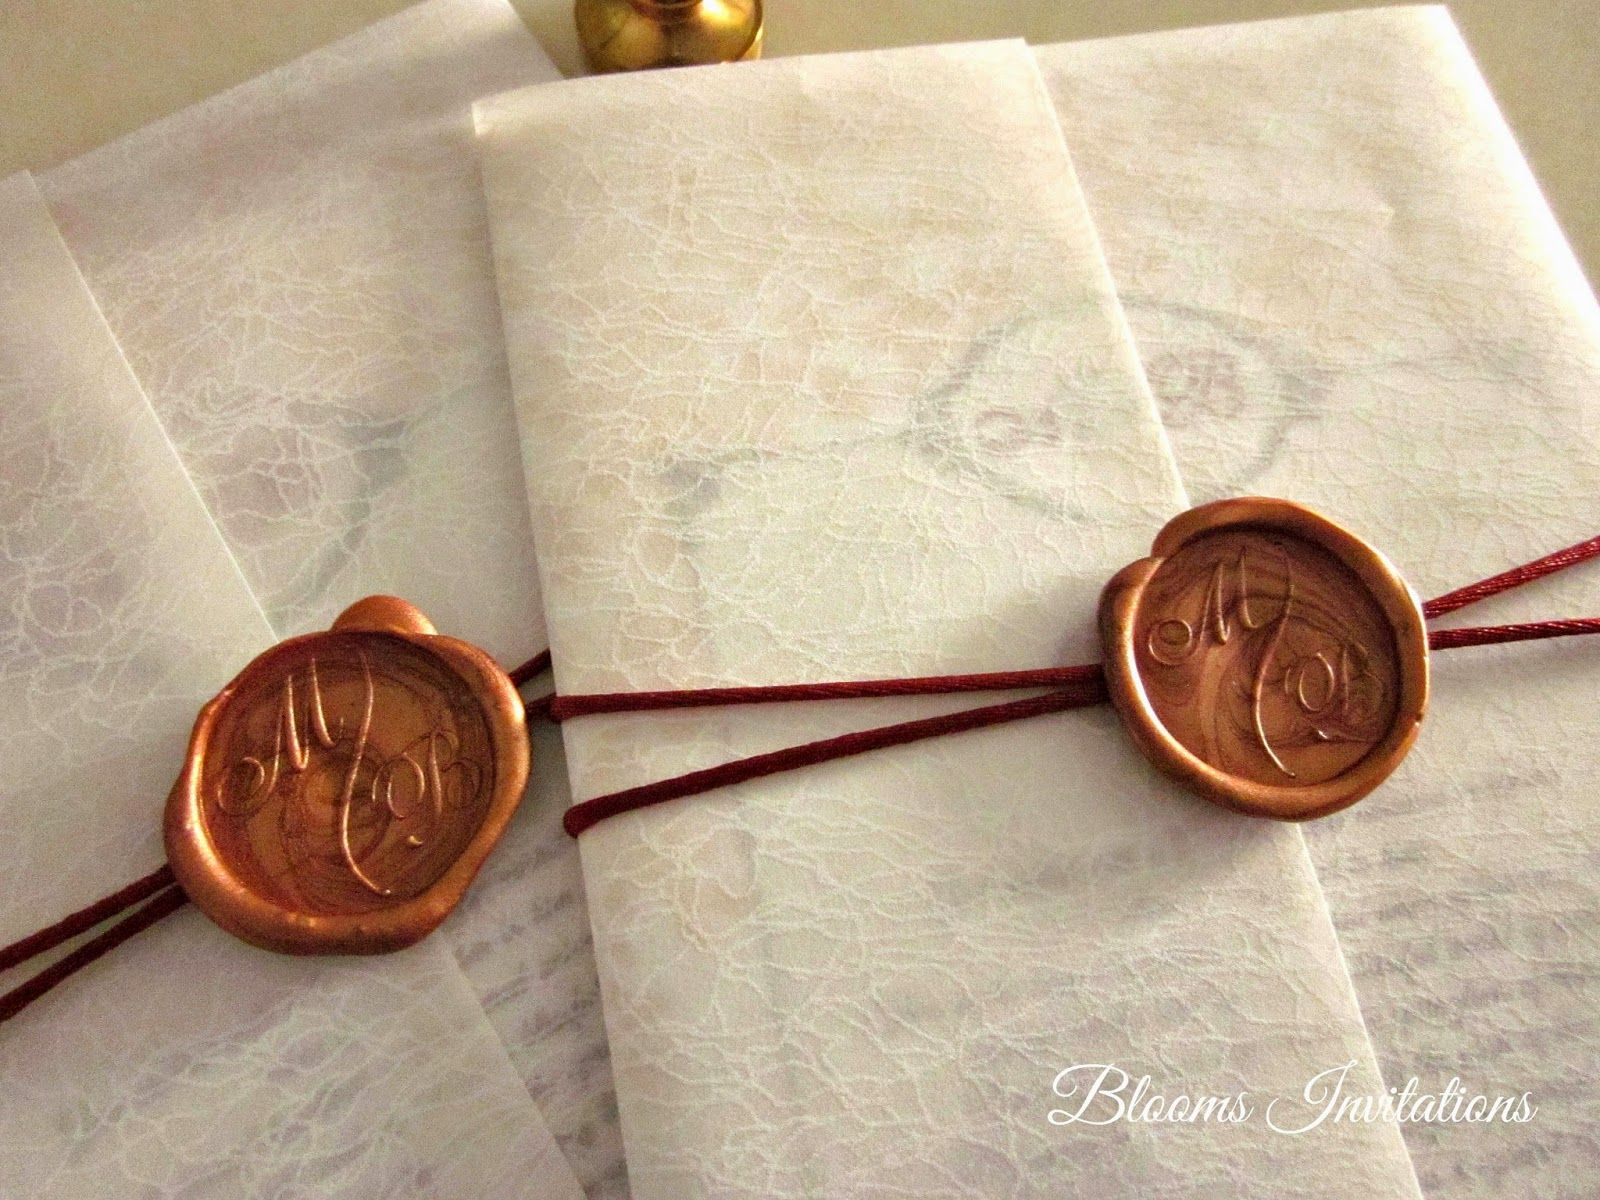 Wax Seals For Wedding Invitations: Wax Seal Wedding Invitation Can Get Them At Art Friends At